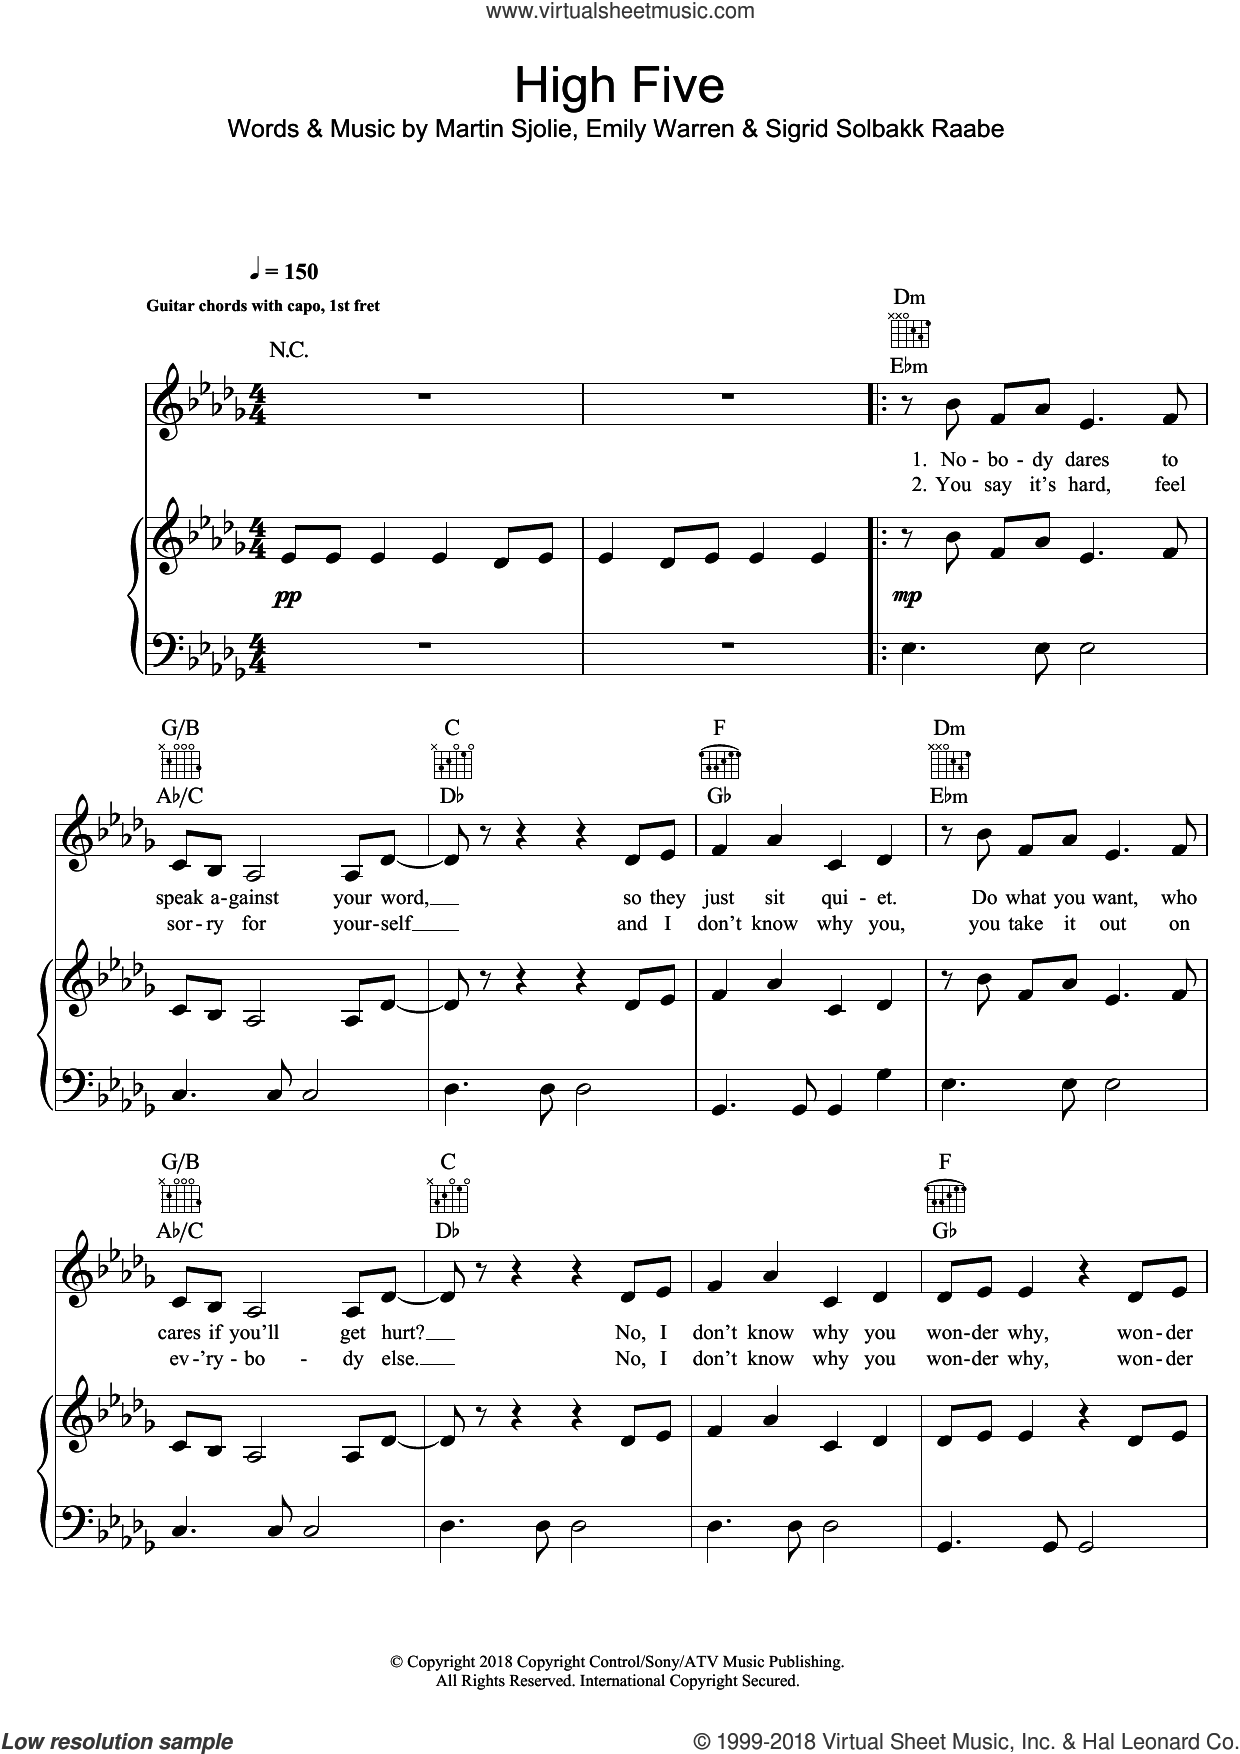 High Five sheet music for voice, piano or guitar by Sigrid, Emily Warren, Martin Sjolie and Sigrid Solbakk Raabe, intermediate skill level